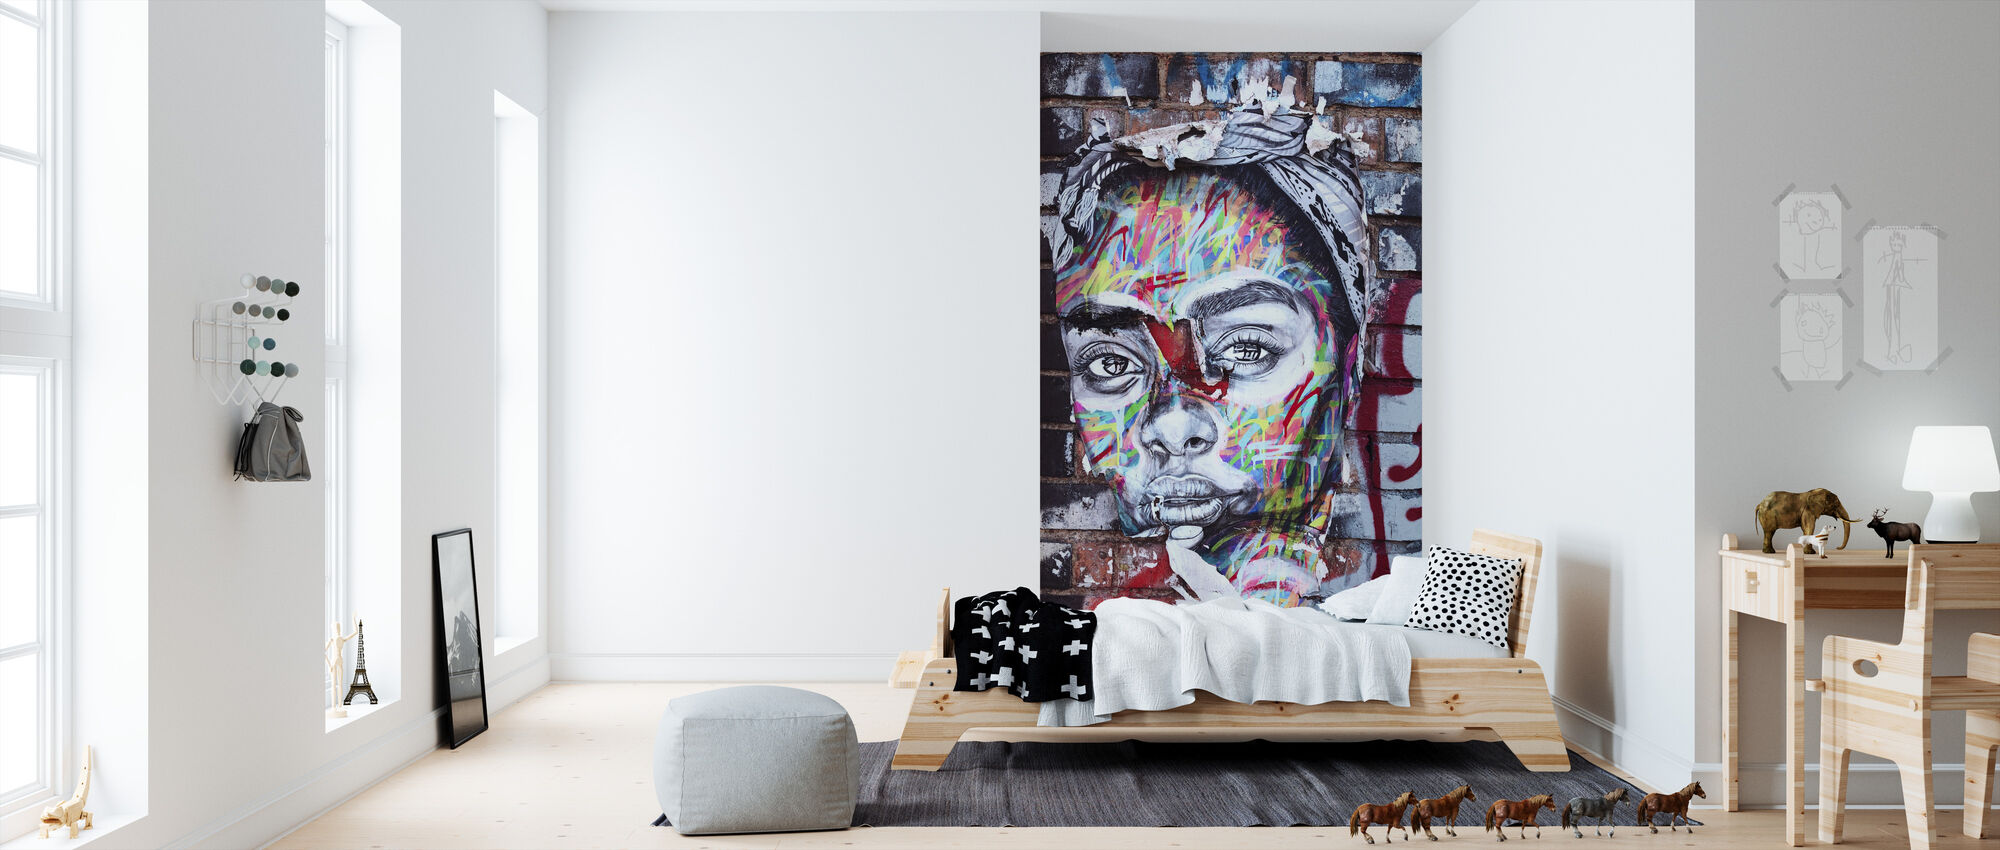 Street Art Portrait - Wallpaper - Kids Room